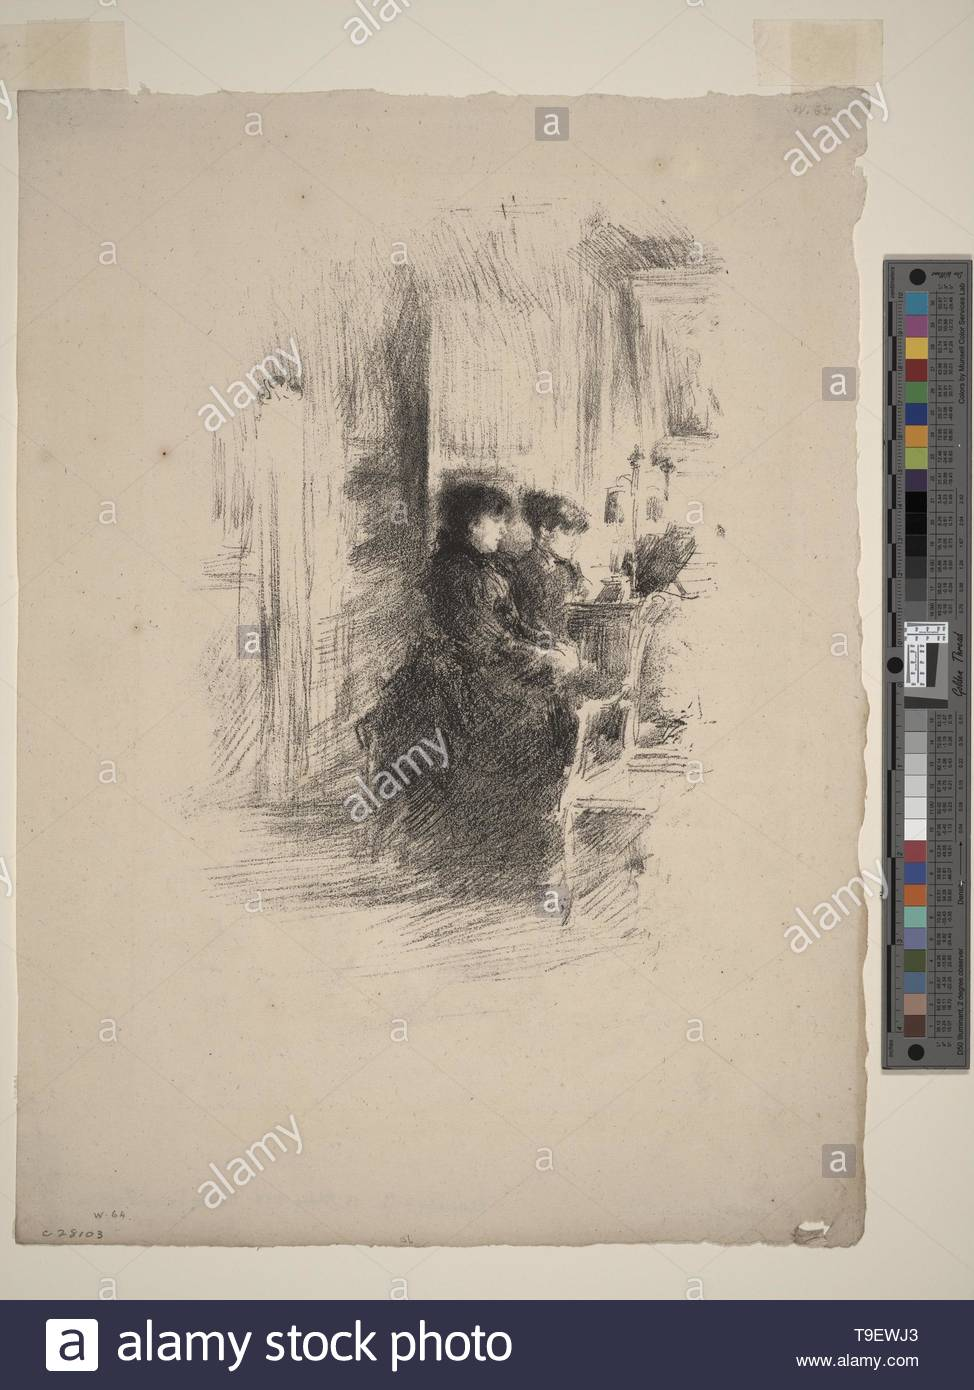 Whistler,JamesMcNeill(1834-1903)-The duet - Stock Image